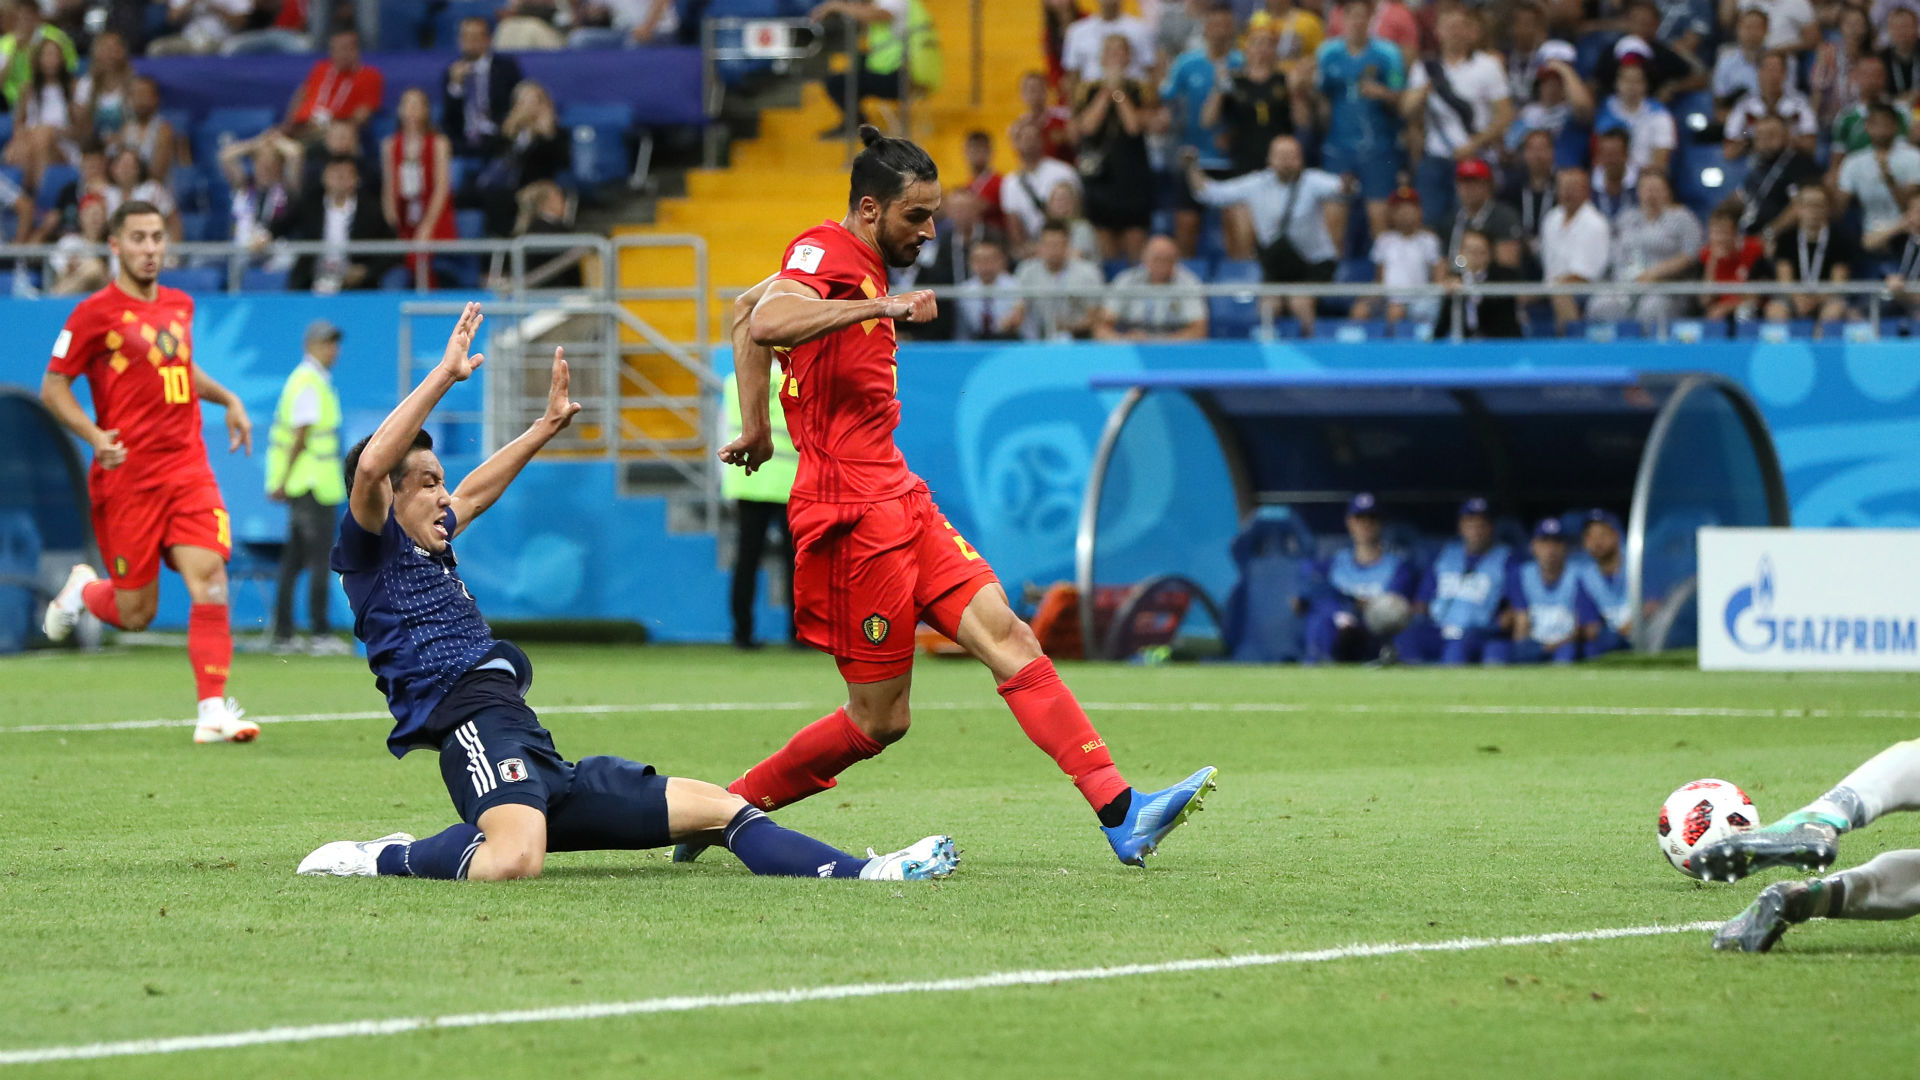 World Cup 2018: Belgium stuns Japan with late comeback